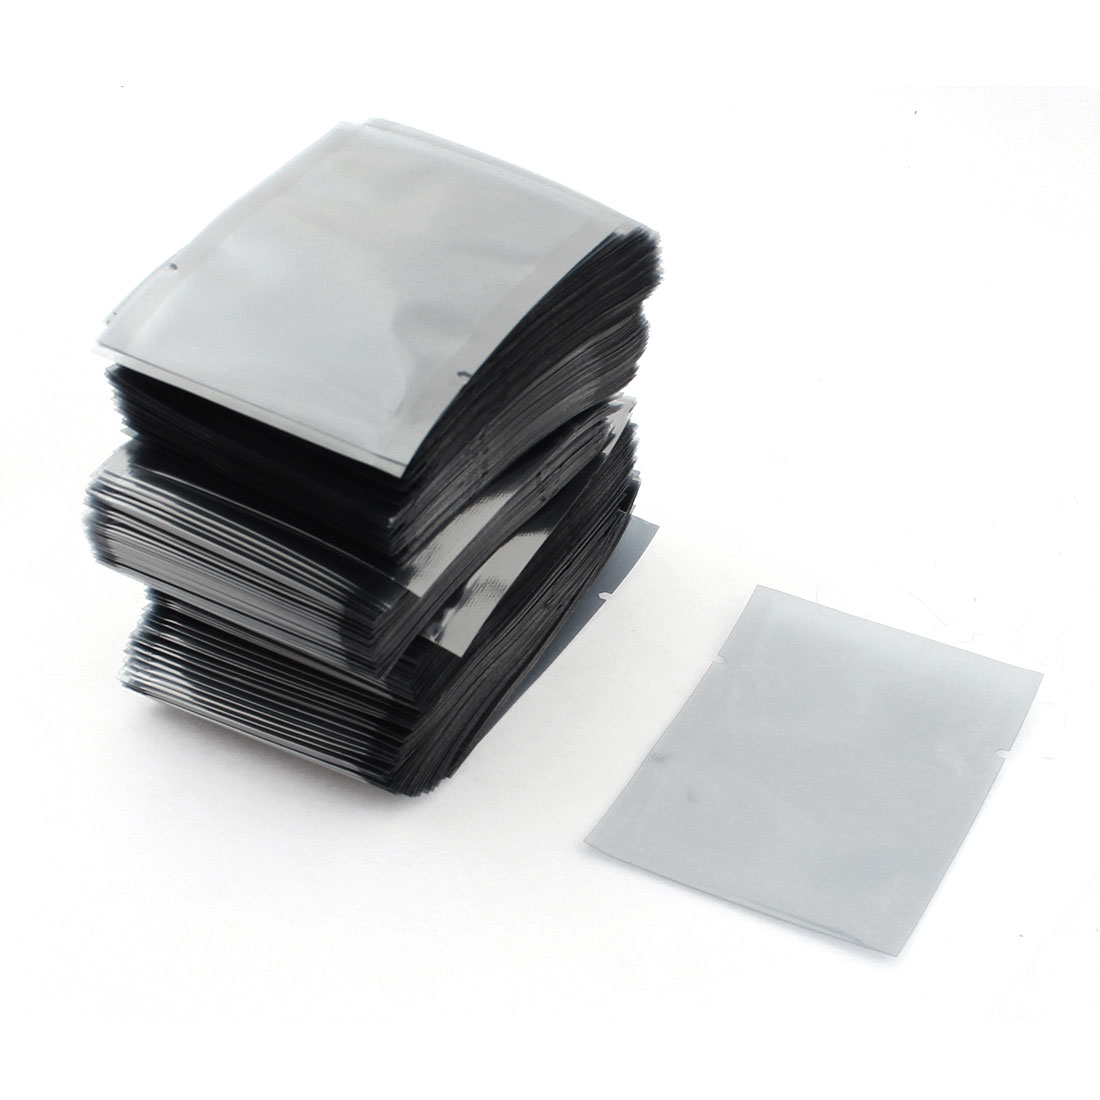 500pcs 6x8cm Rectangle Open Top Clear Gray Plastic Anti Static Shielding Bag Packagings Protector for PCB Board